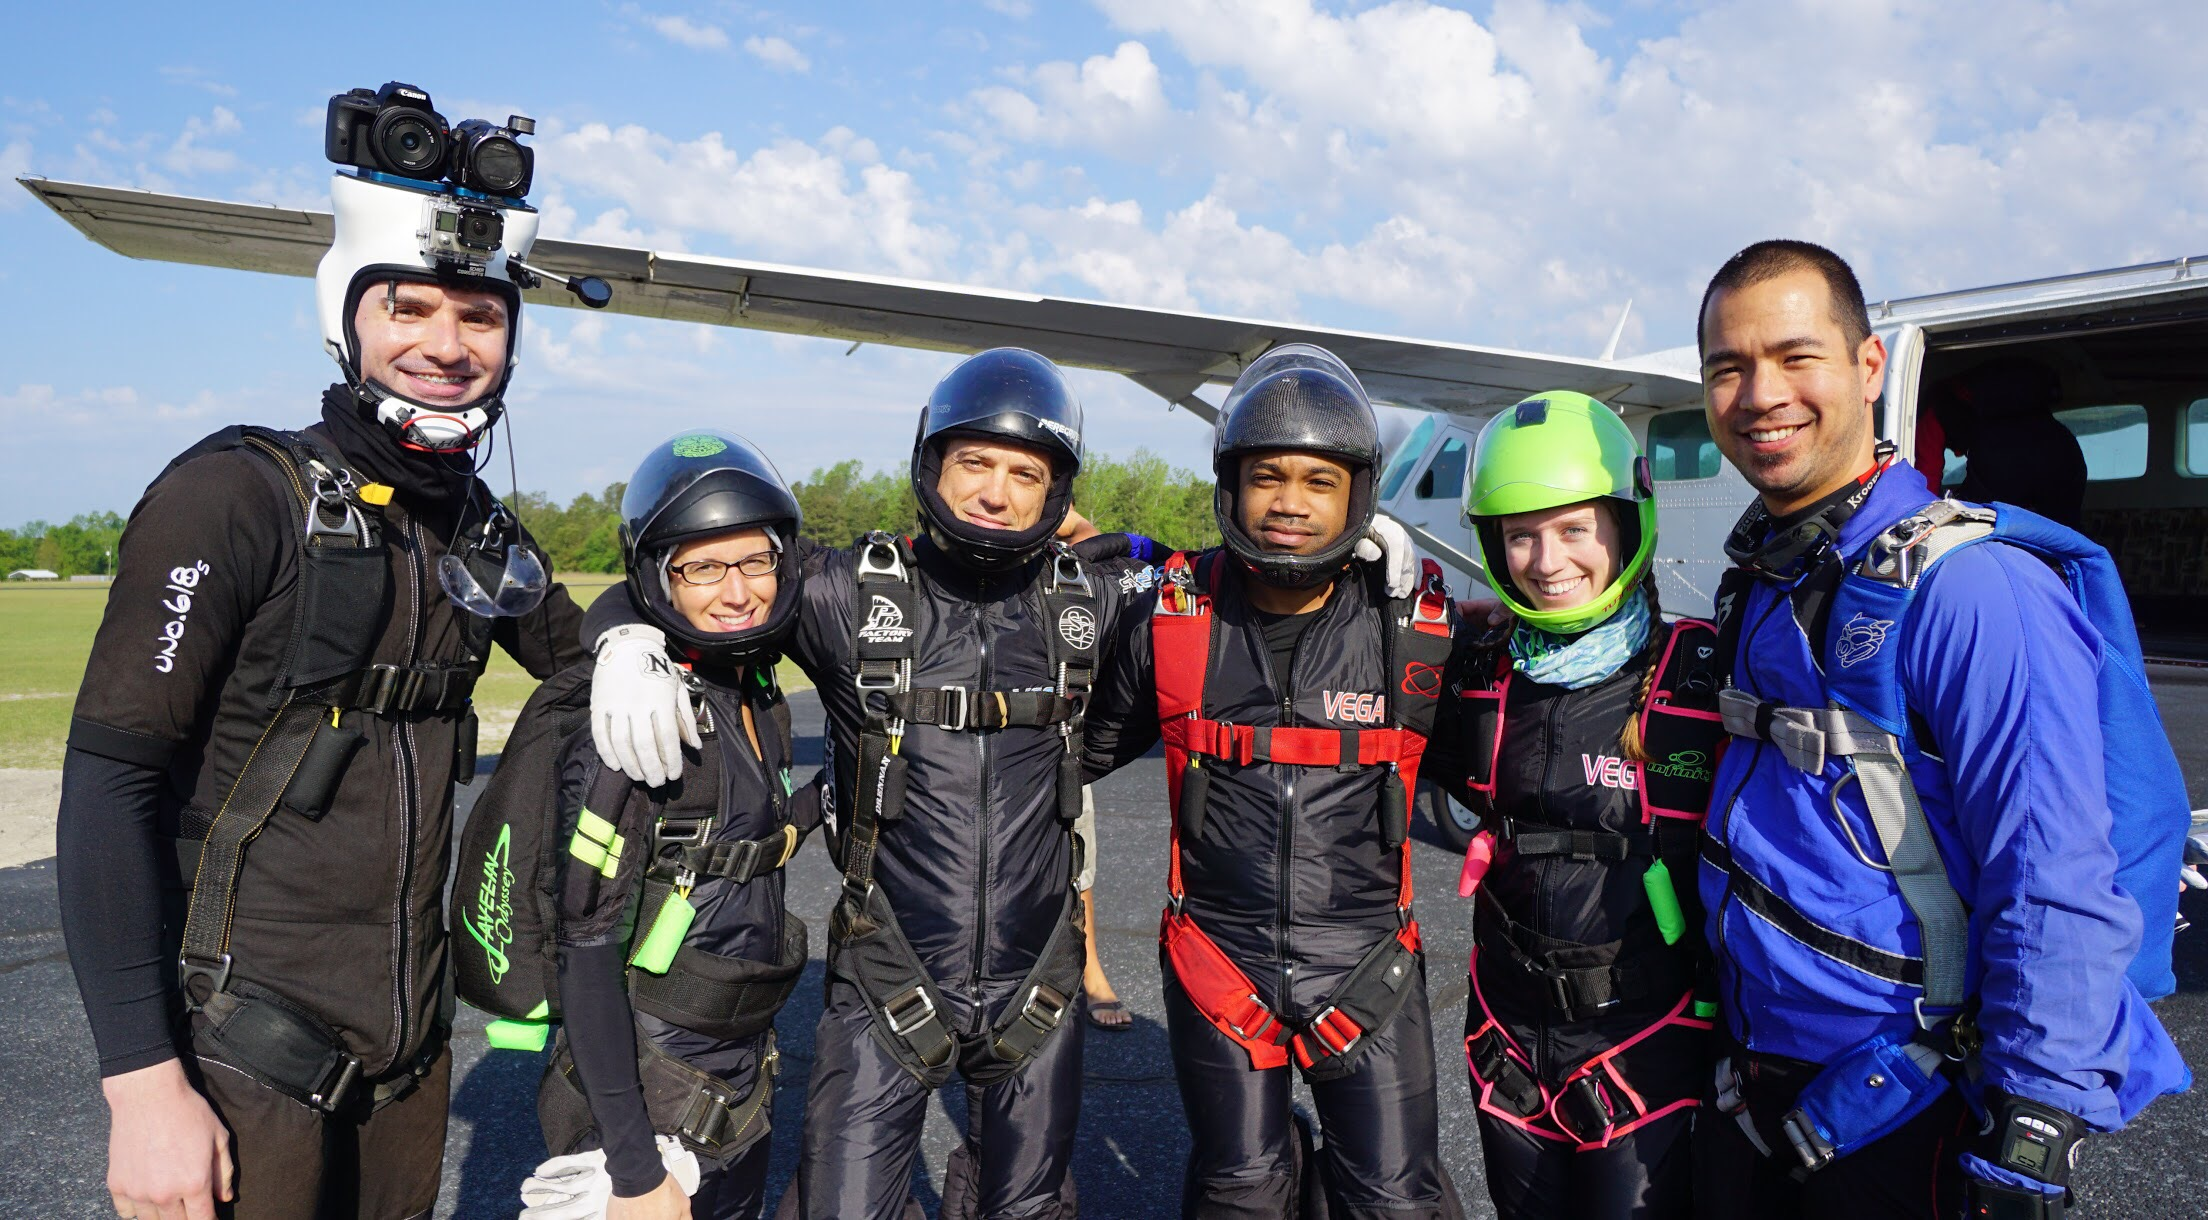 Nick (3rd from right) poses for a photo along with Vega XP team members at a drop-zone in North Carolina.  Photo credit: Elliot Byrd